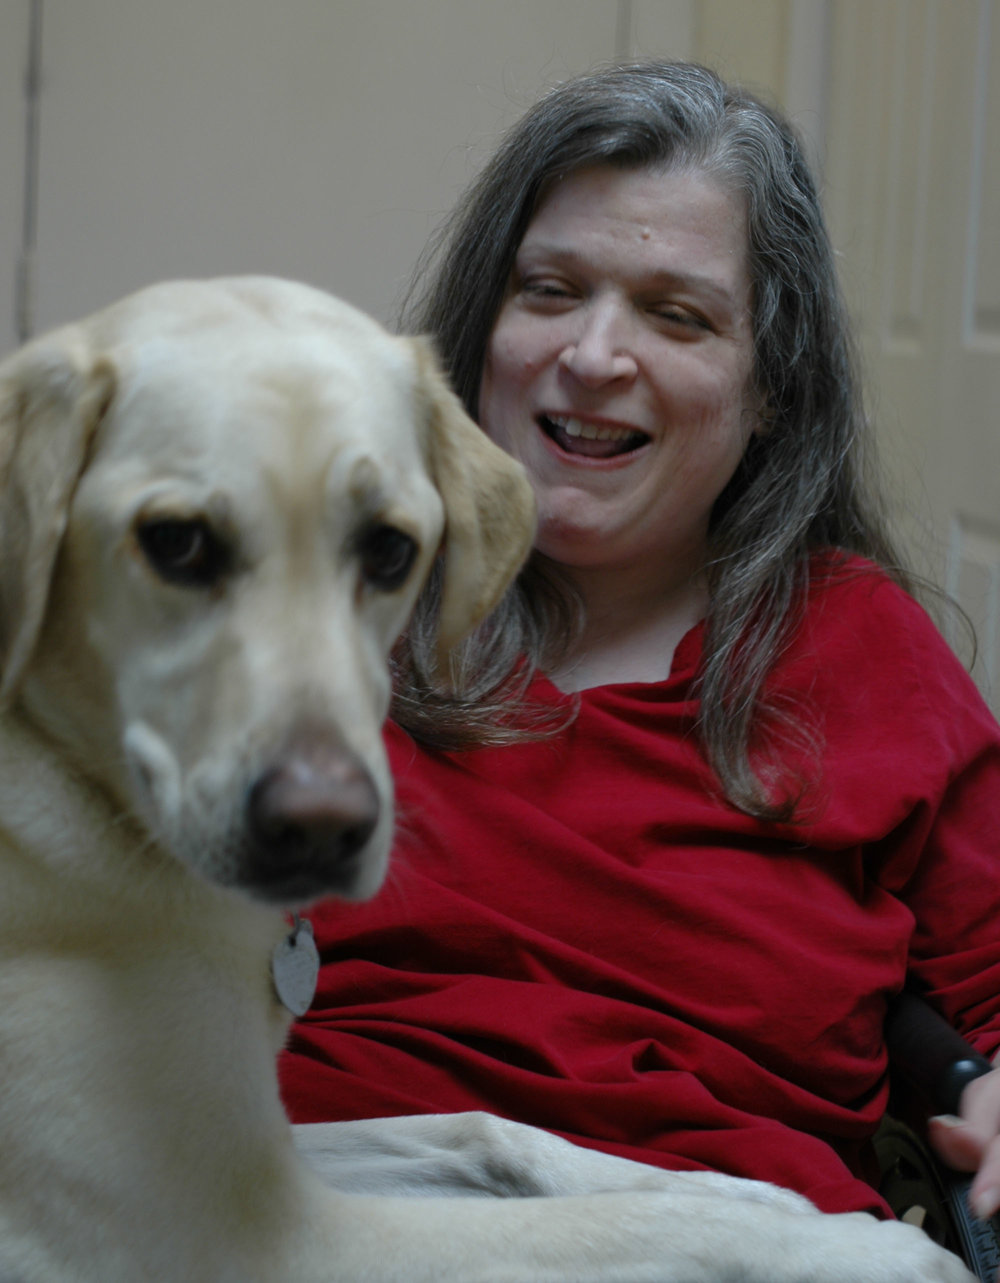 Molly Felder - Molly , the author of Henry the Boy, has a physical disability called cerebral palsy. Her assistance dog, Patterson, was placed with her through Canine Companions for Independence. He helps her by opening doors, turning lights on and off, and much more. In 2016, they attended the Highlights Foundation Kid's Book Revision Retreat together in beautiful Honesdale, Pennsylvania. Molly received her M.A. from New York University's Gallatin School of Individualized Study, where she focused on creative writing and disability culture. She is committed to representing children of all abilities in her writing, and loves teaching English to Chinese students online. She lives in Alabama.photo by Jim Felder